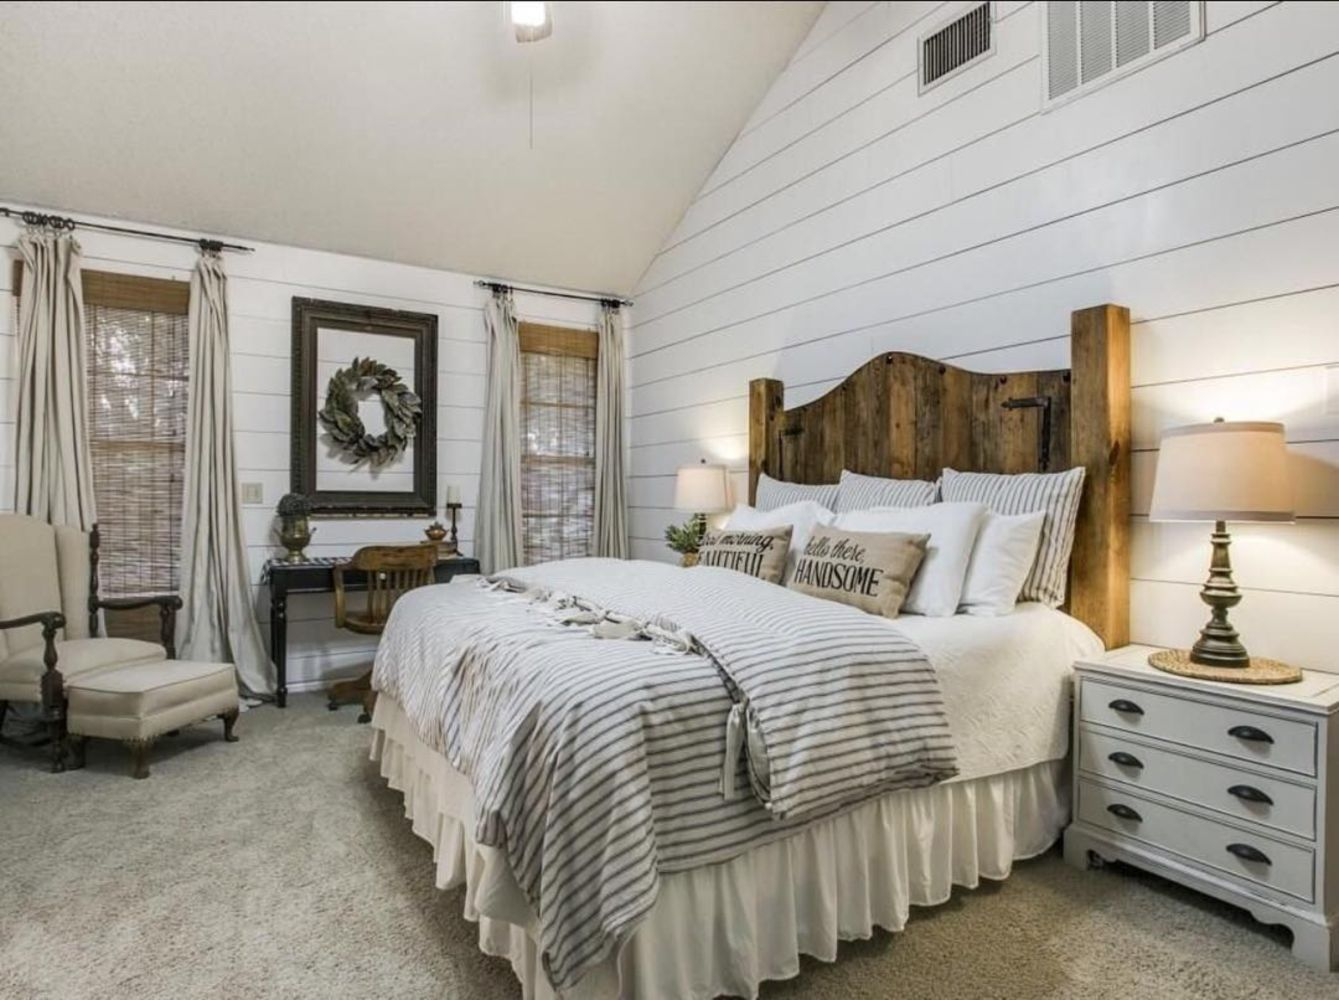 Cool 53 Beautiful Urban Farmhouse Master Bedroom Remodel  Https://cooarchitecture.com/